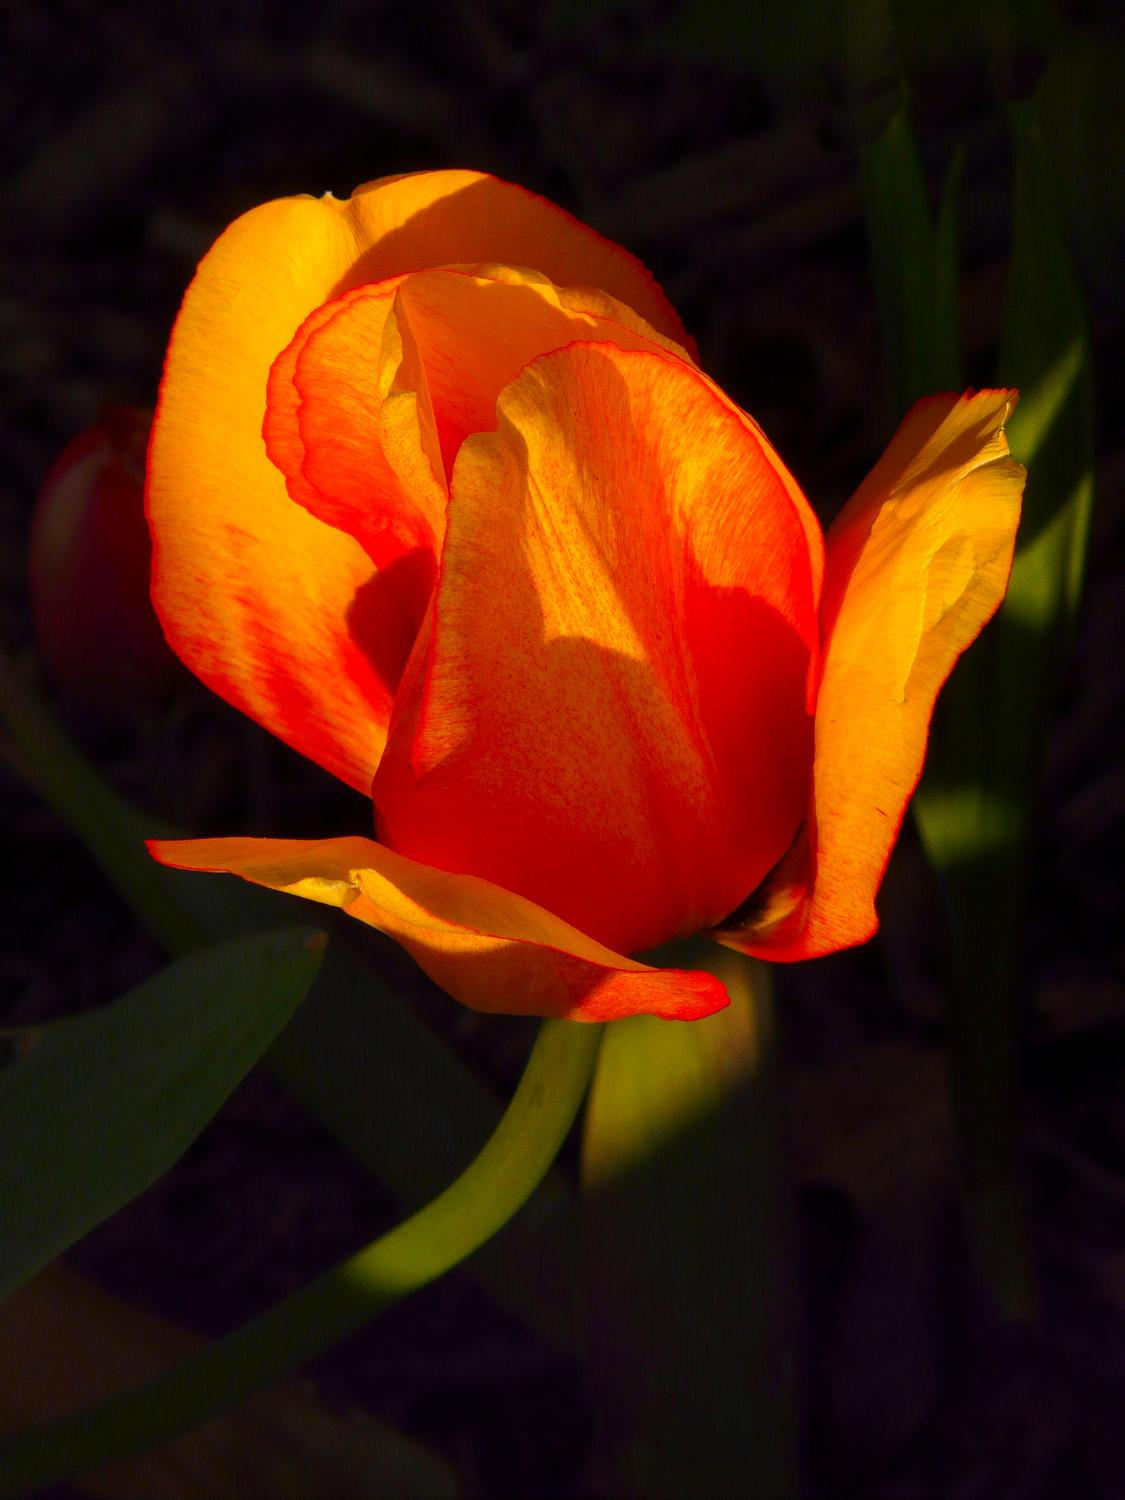 Tulip grown by The Artist's Muse - #22 - Tulip #22 - - art  - photography - by Tony Karp